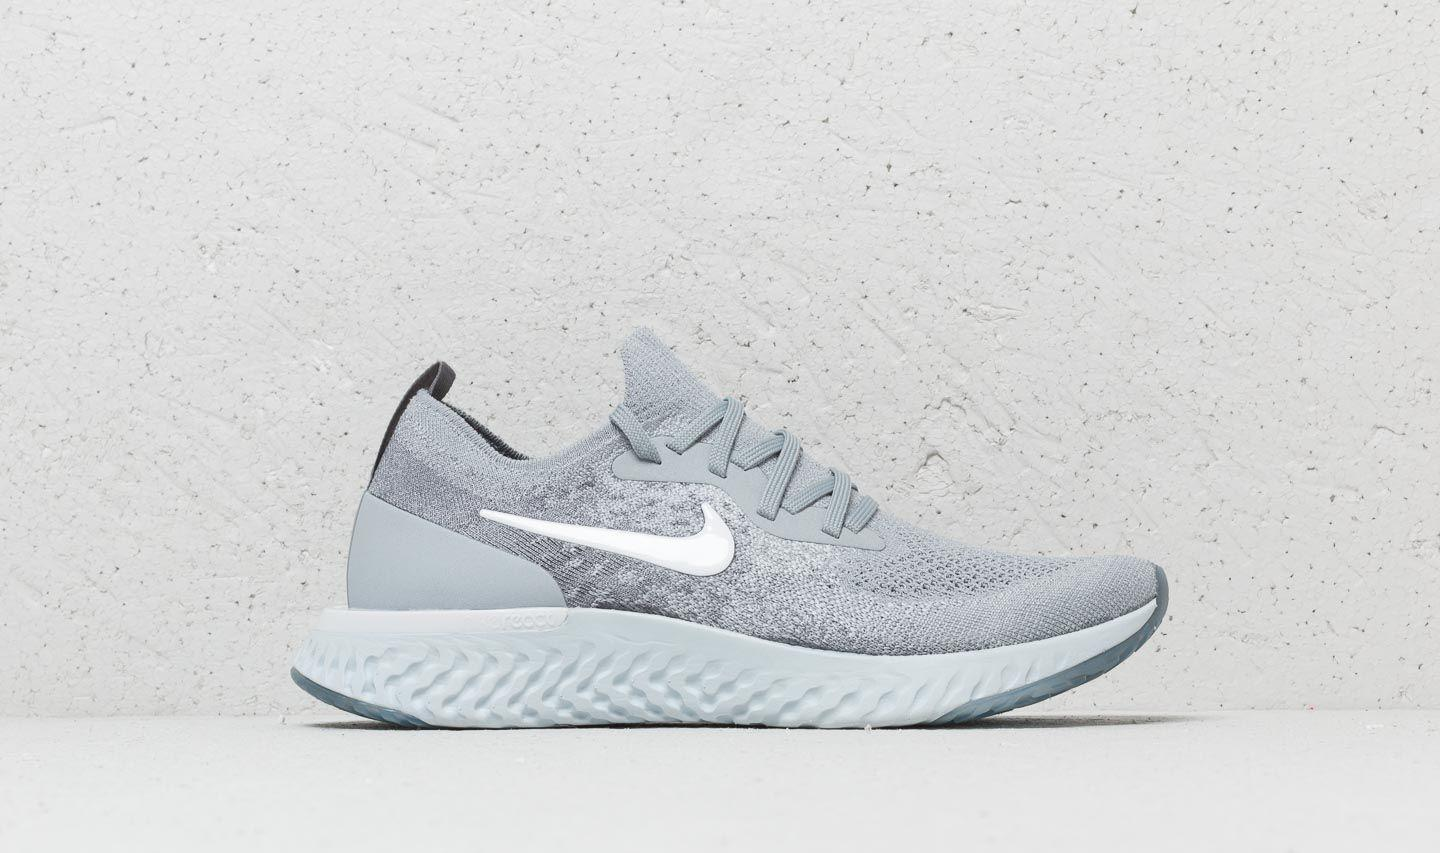 bc17593f23ad Lyst - Nike Epic React Flyknit Sneakers in Gray - Save 51%